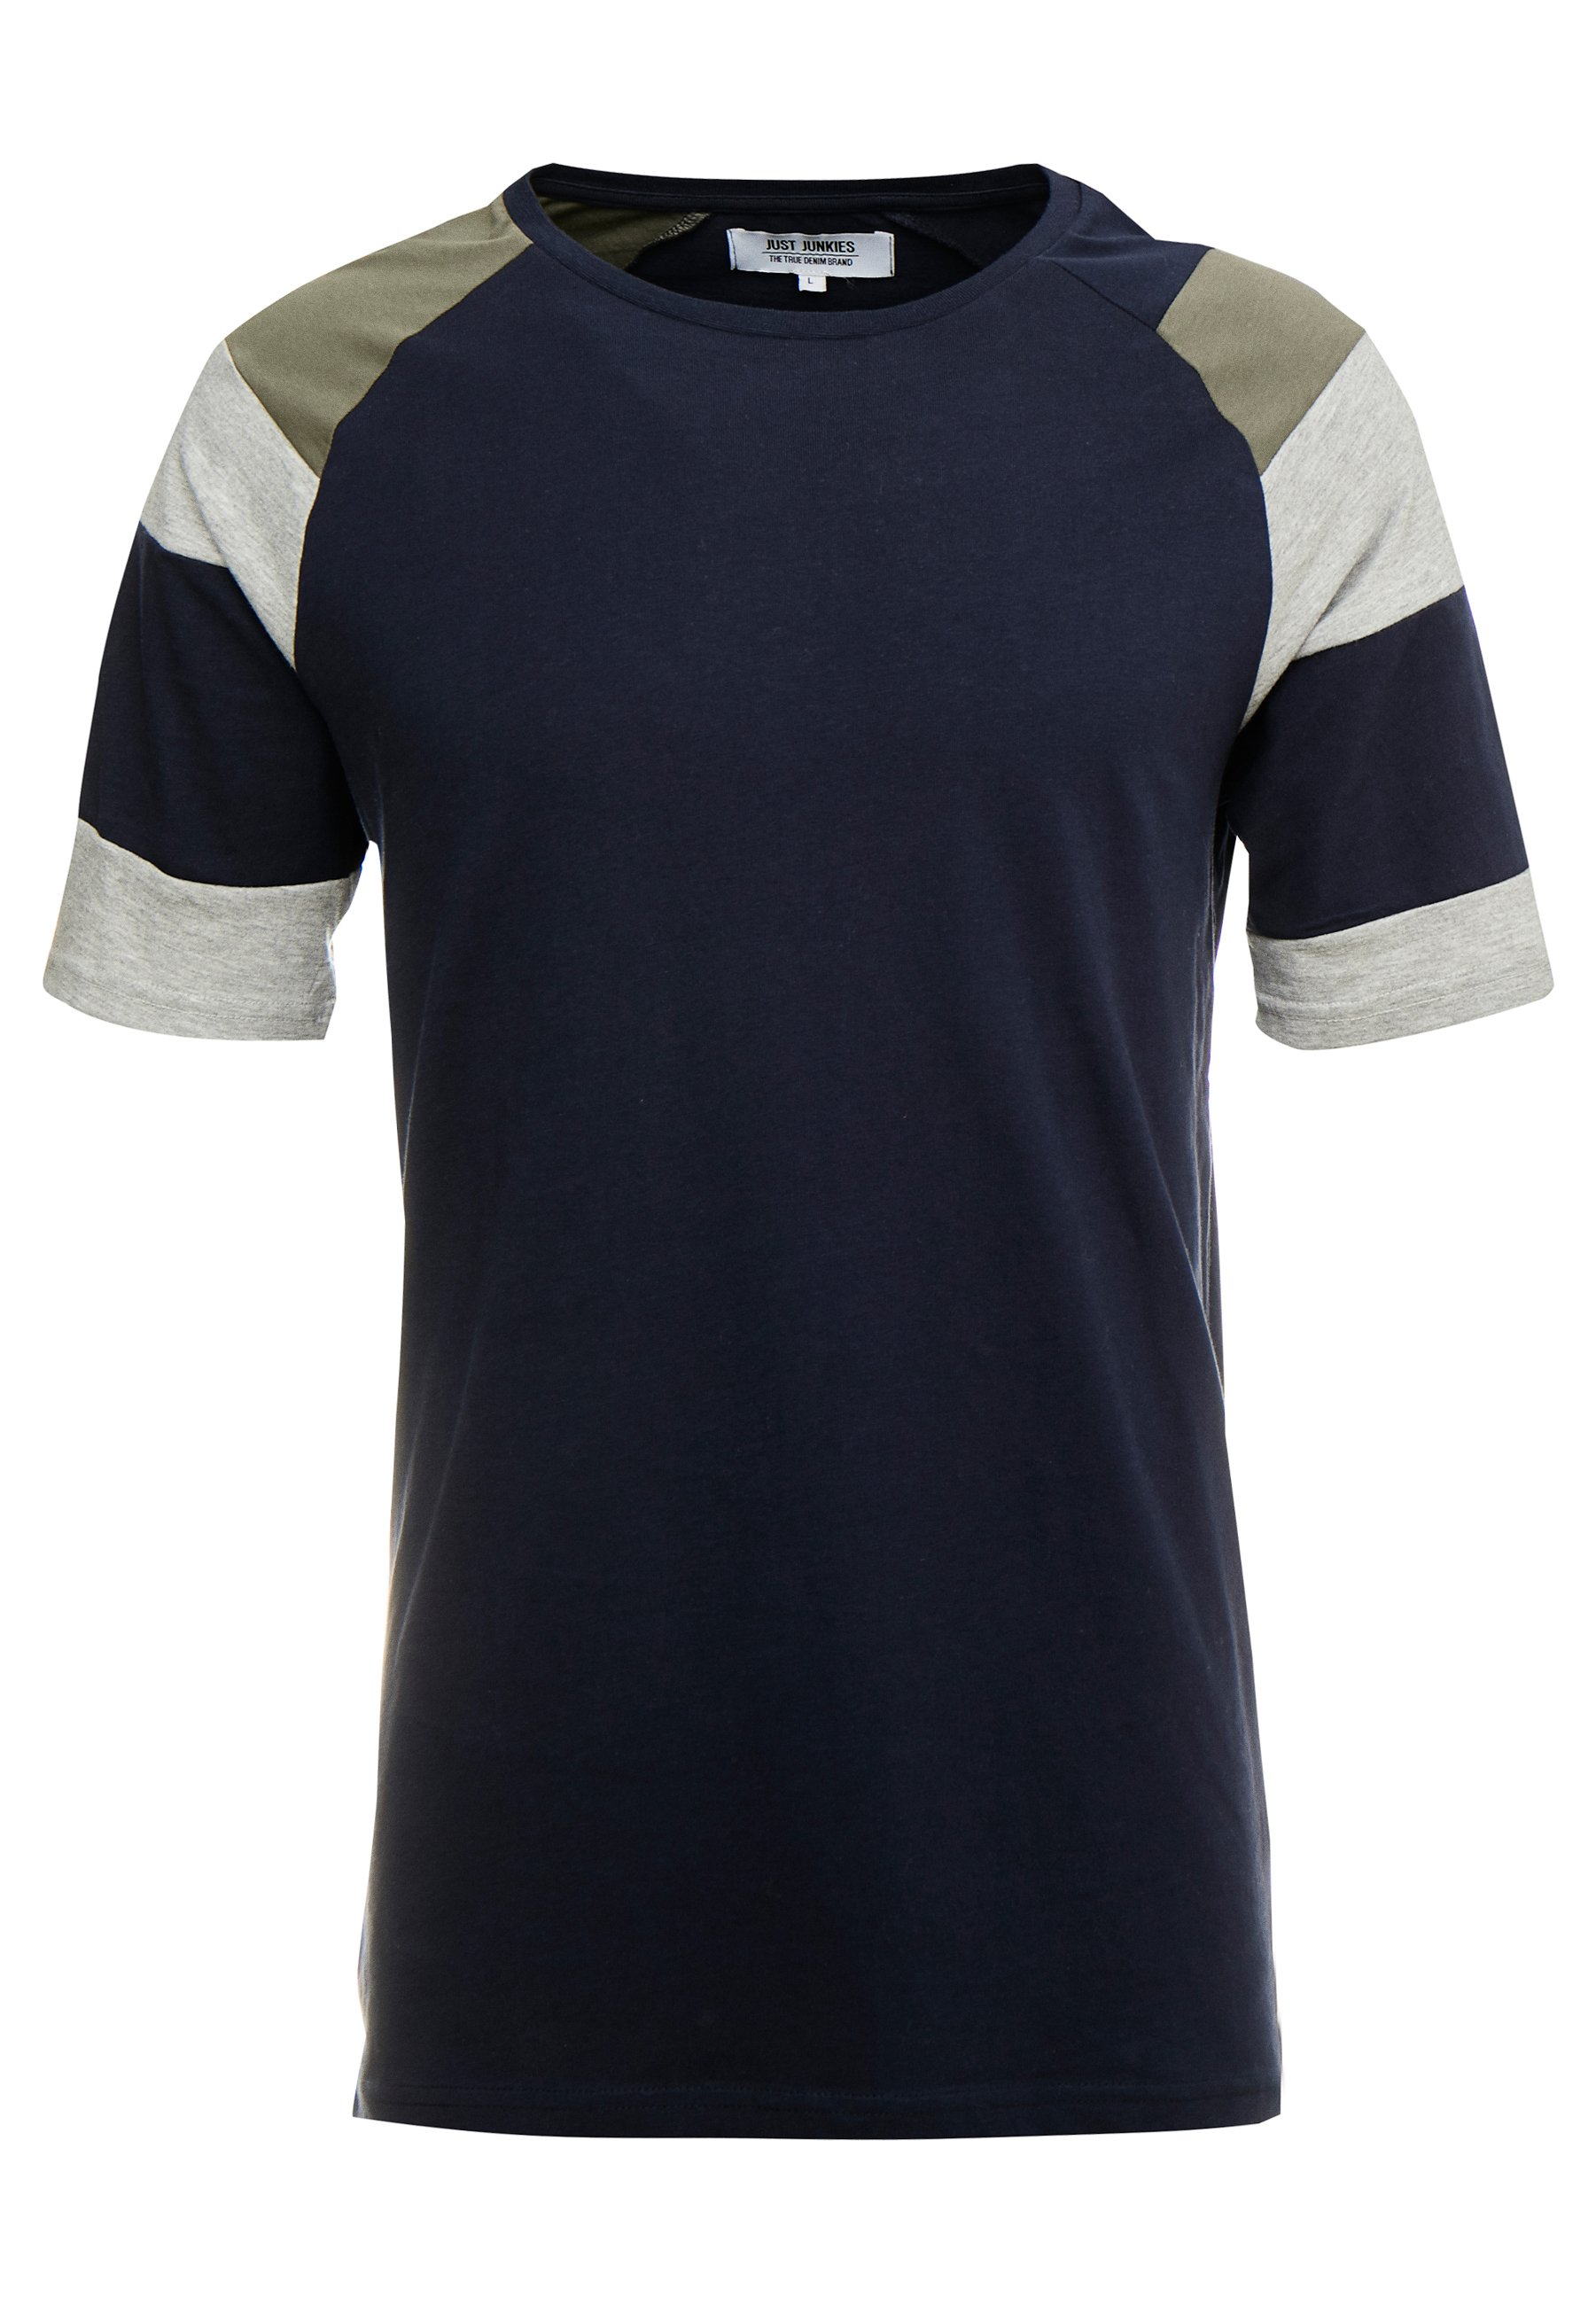 Just Junkies Cell Tee - T-shirt Con Stampa Navy